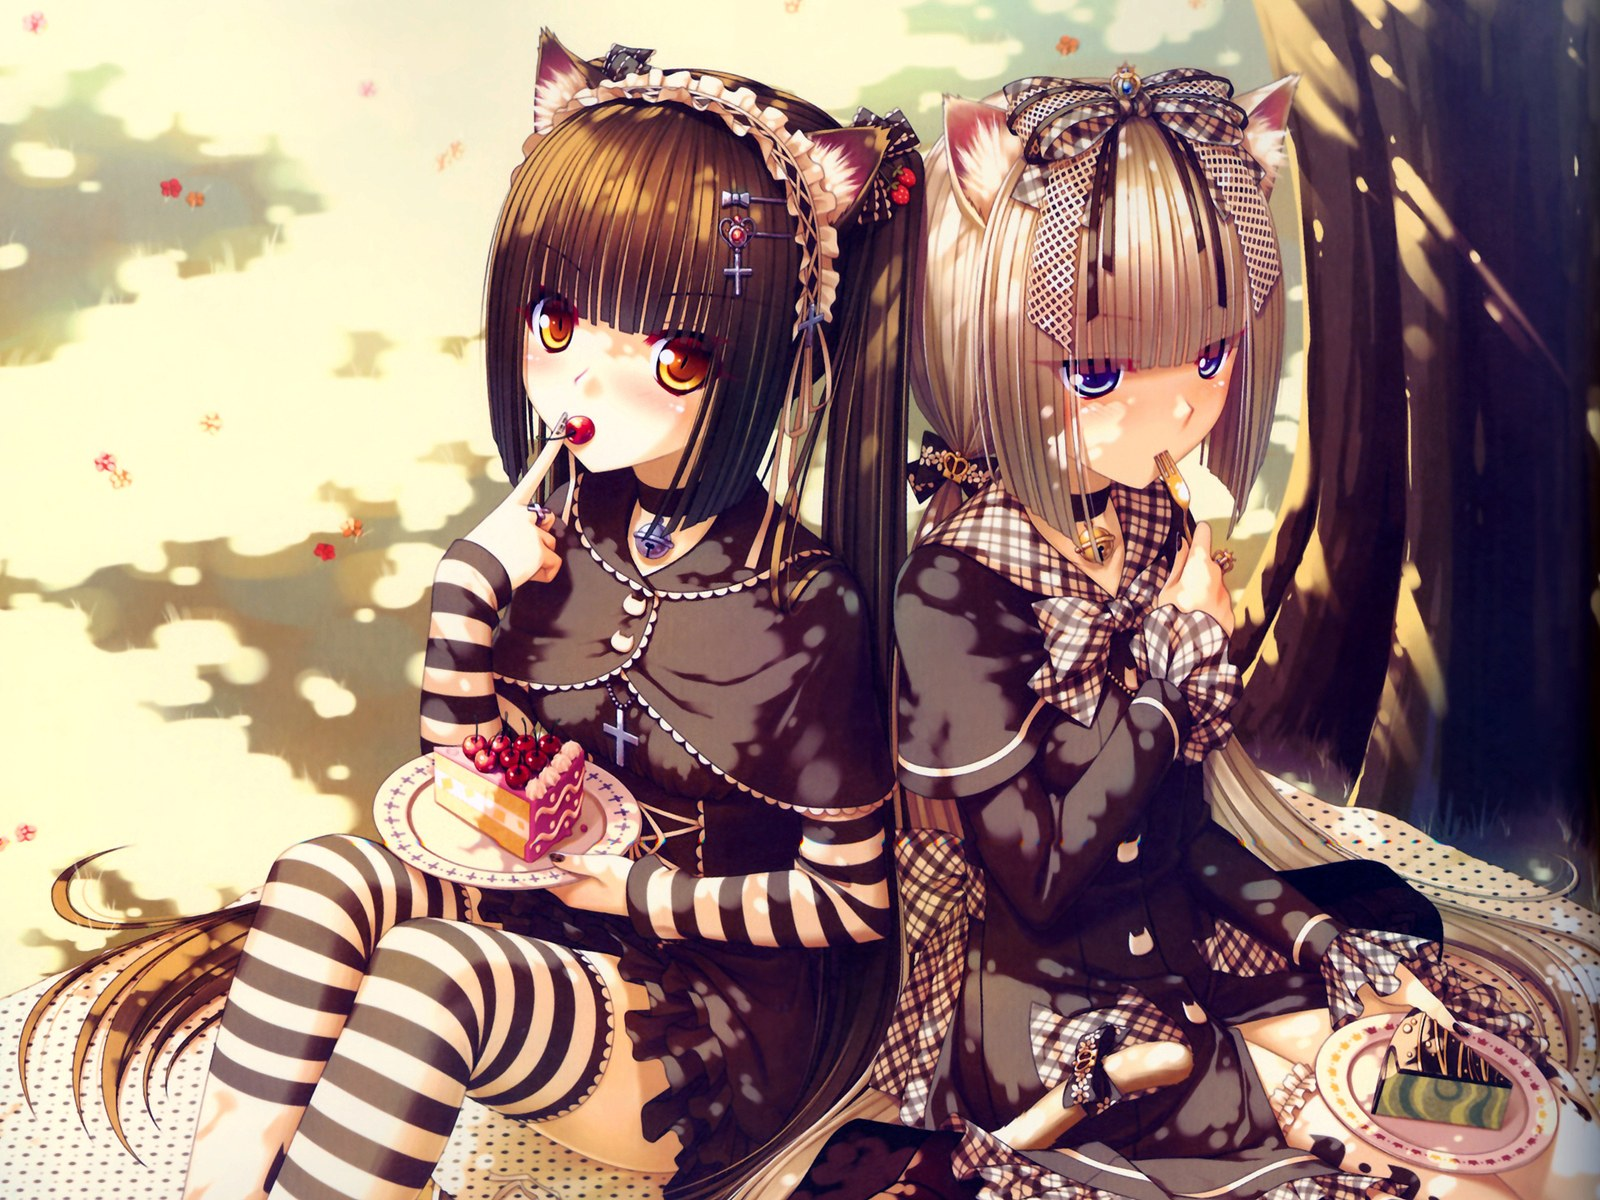 1000+ images about Kawaii /Shy on Pinterest | Girls, Maids and Search